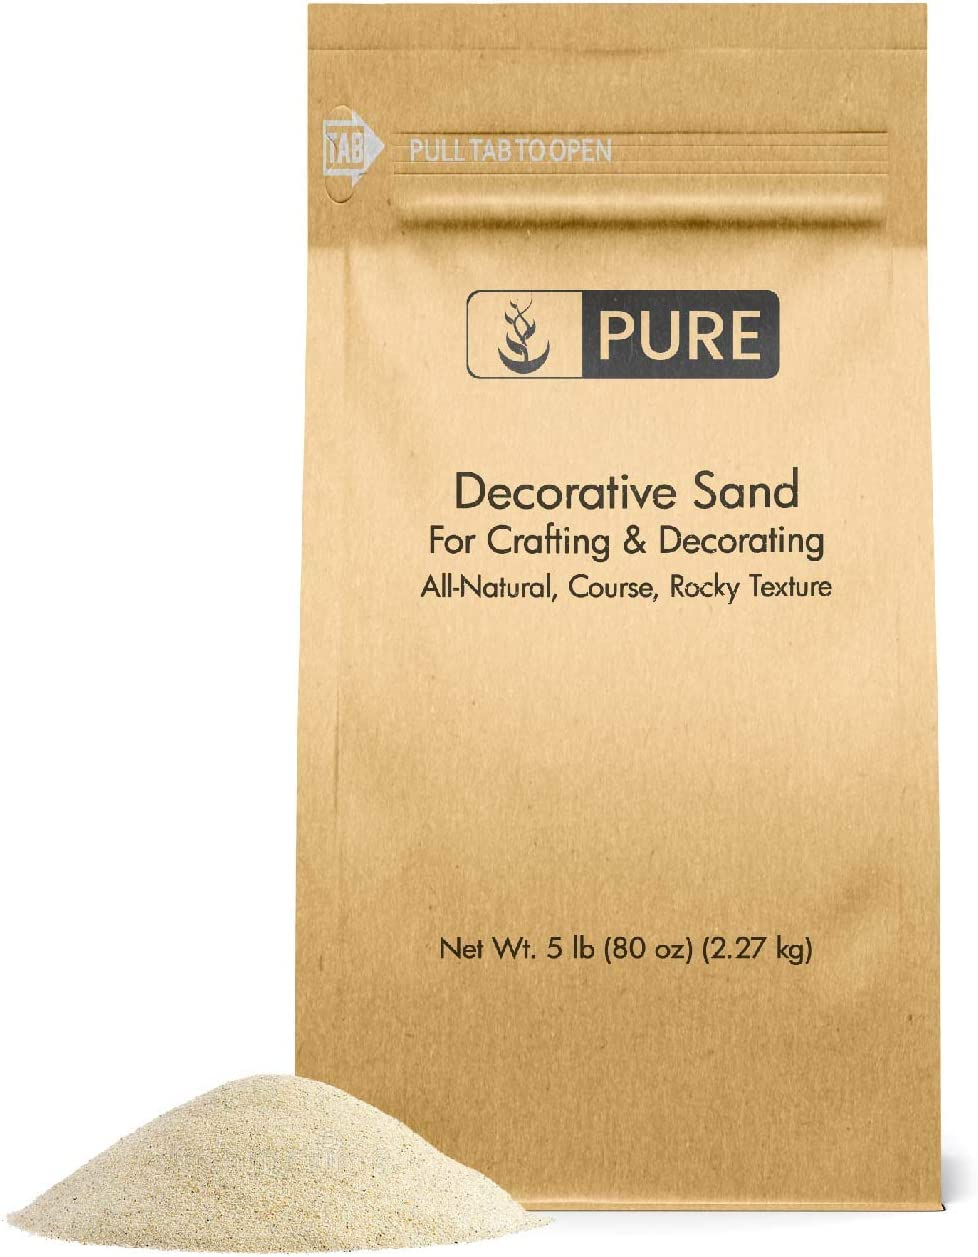 Natural Decorative Sand 5 lbs Free shipping anywhere in the nation by Pure Use Real Cr Many popular brands for